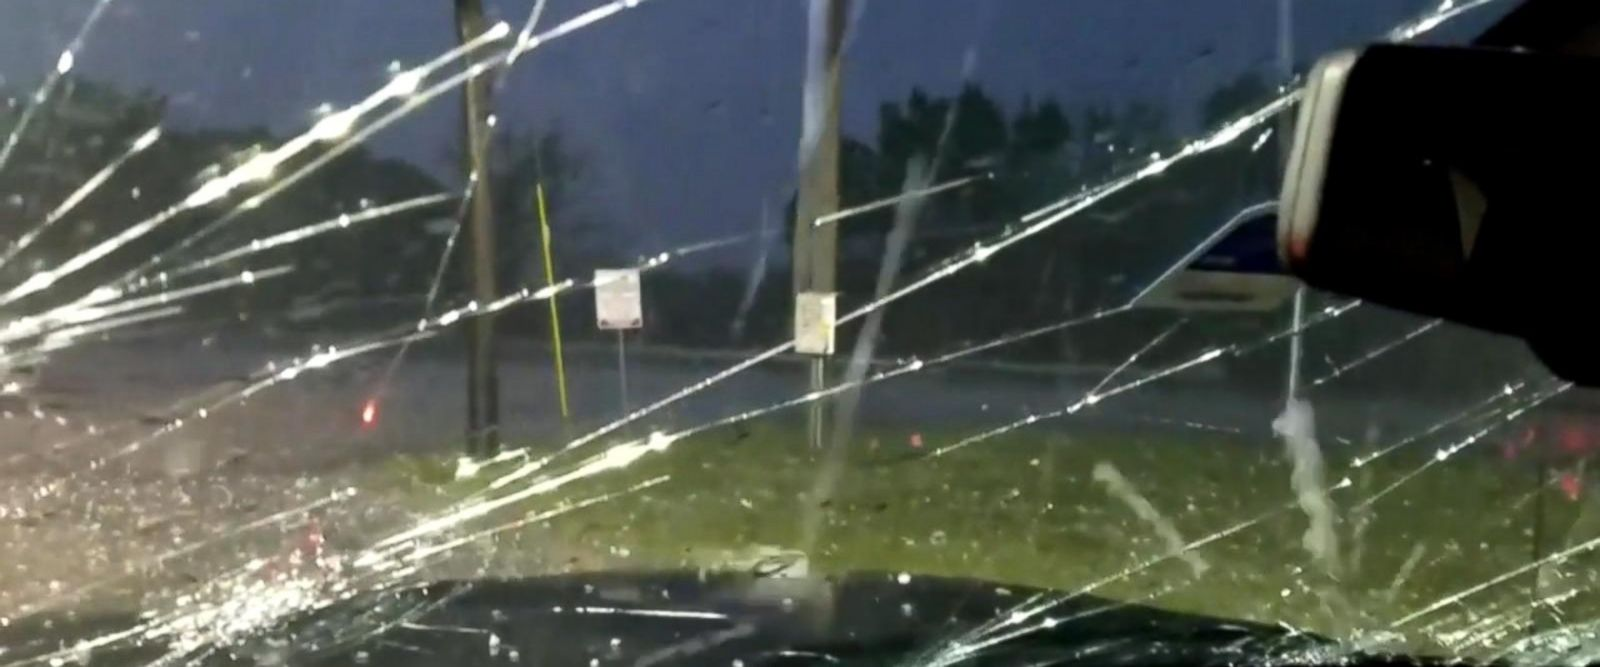 VIDEO: Severe storms bring golf ball-sized hail to Texas